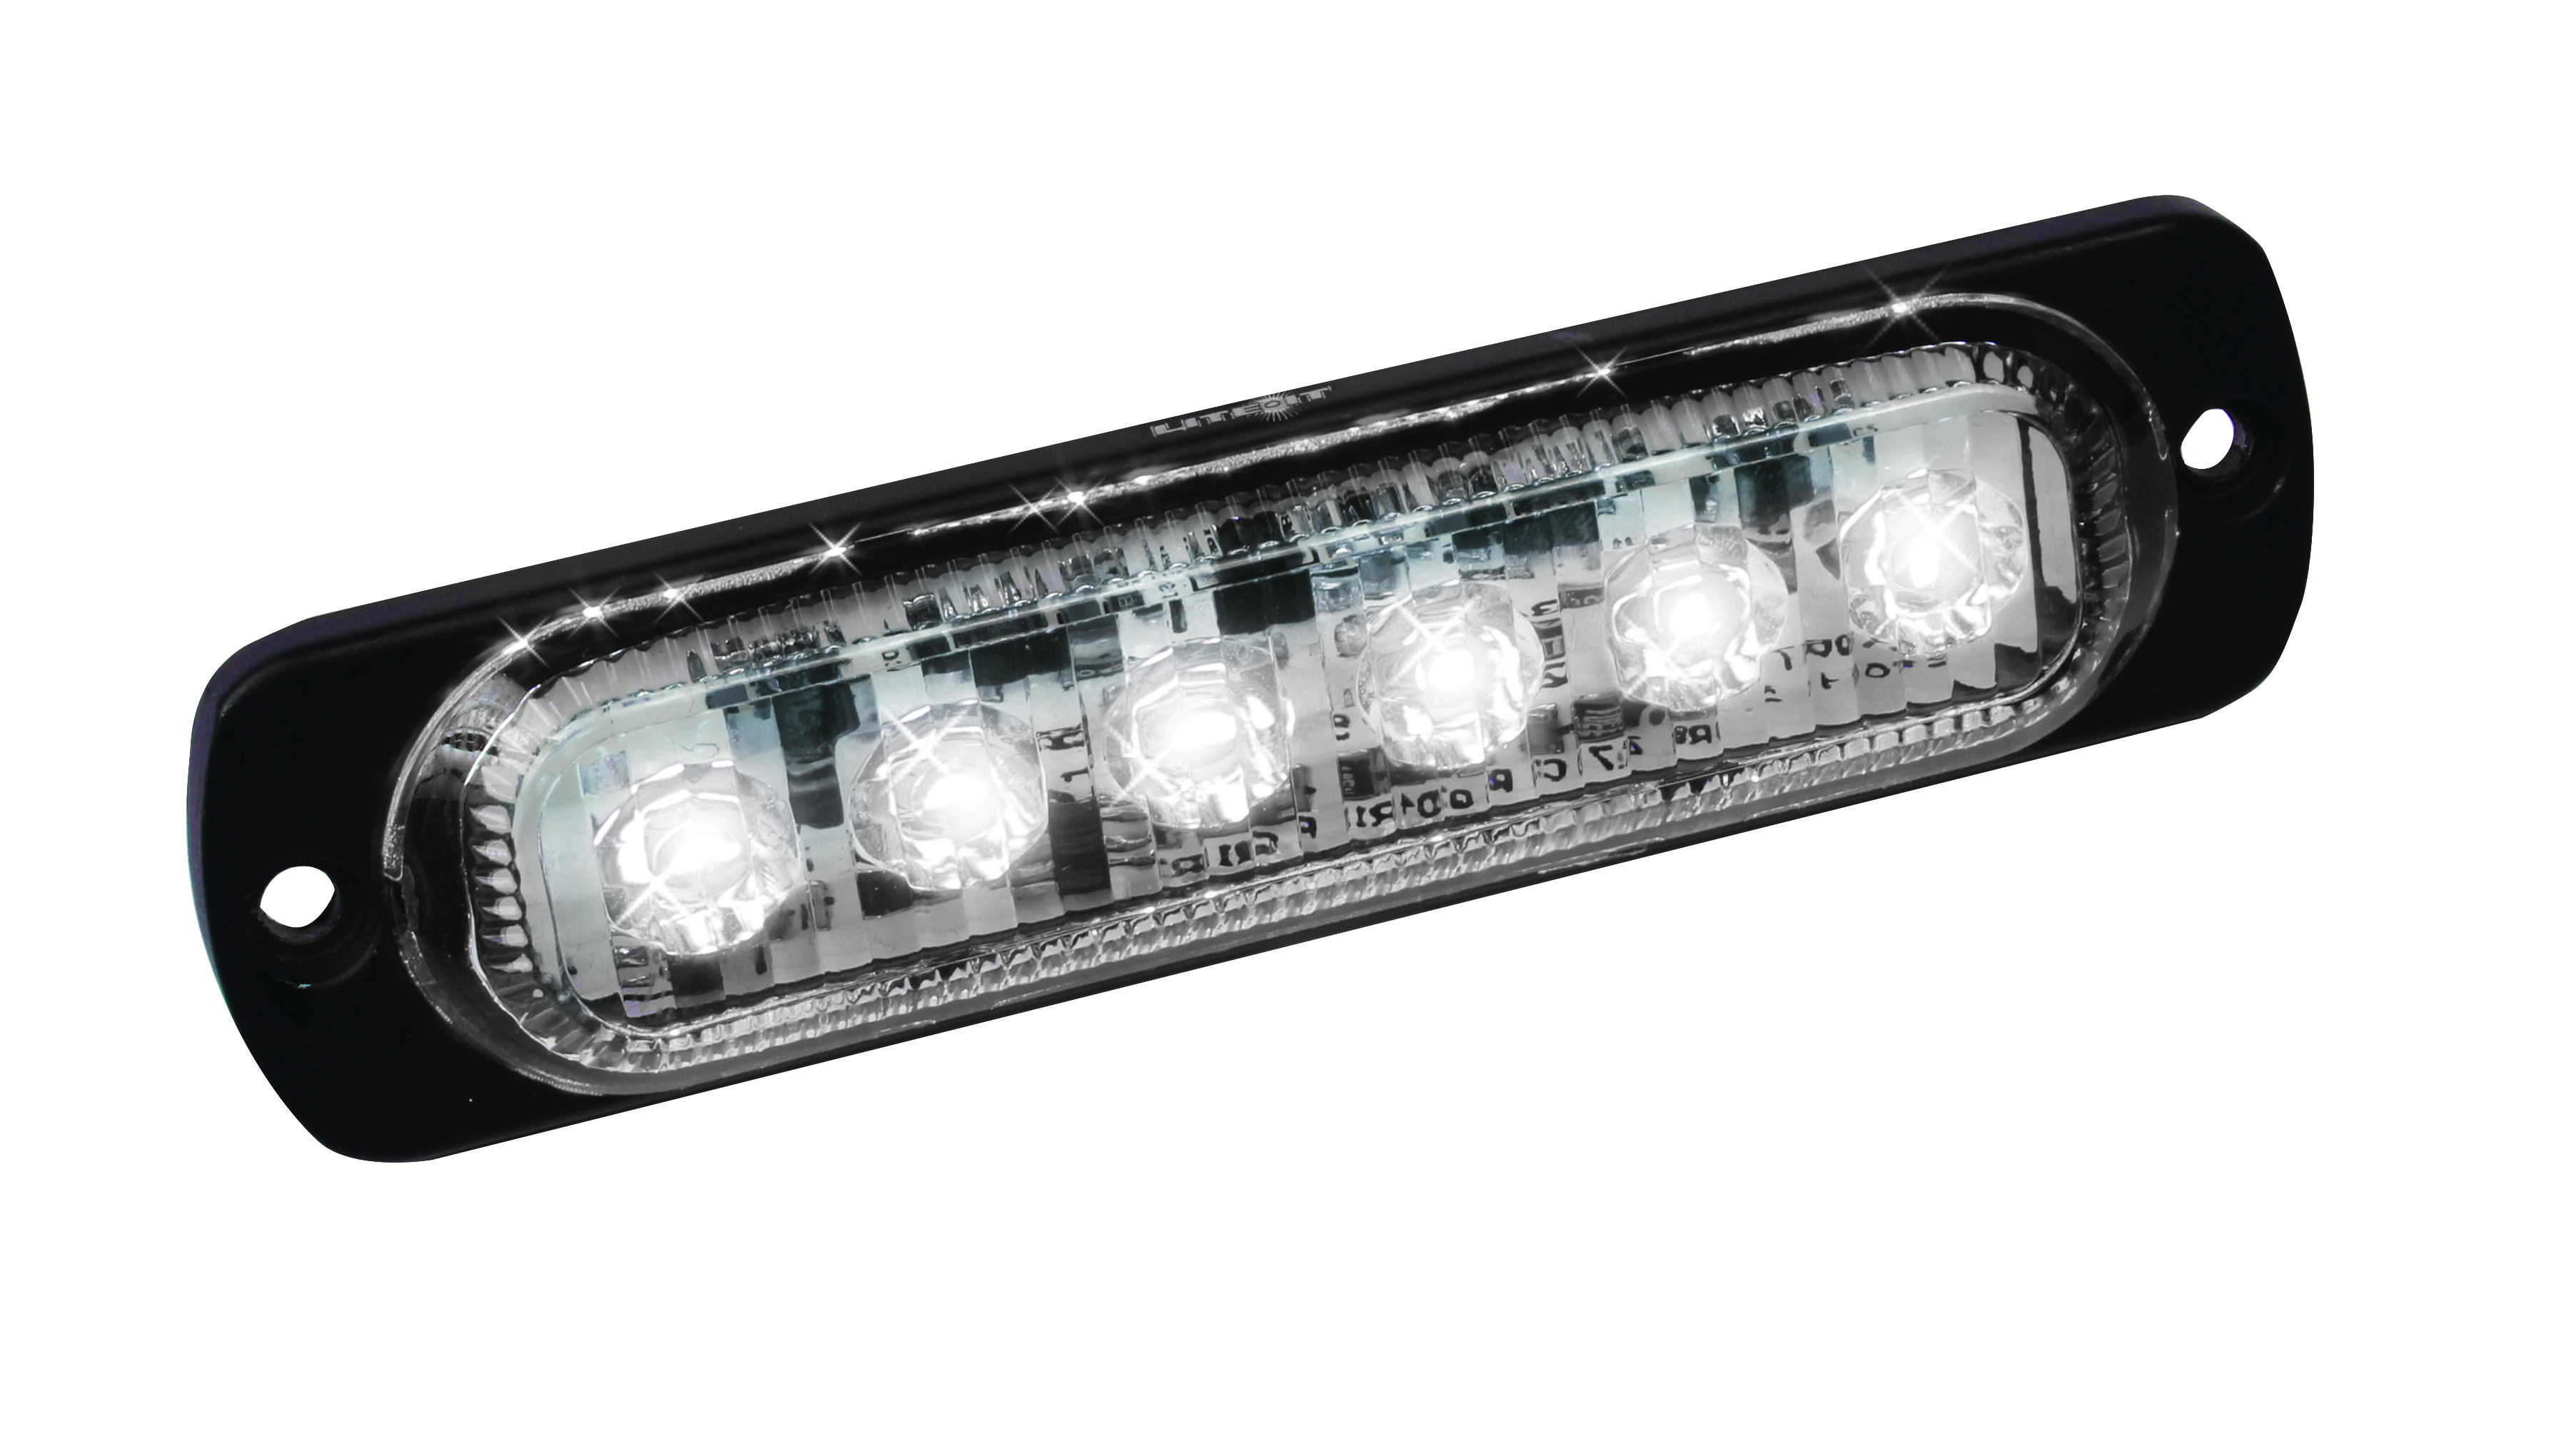 Led Low Profile Strobes With 19 Flash Patterns Custer Products Emergency Light Bar Wiring Diagram